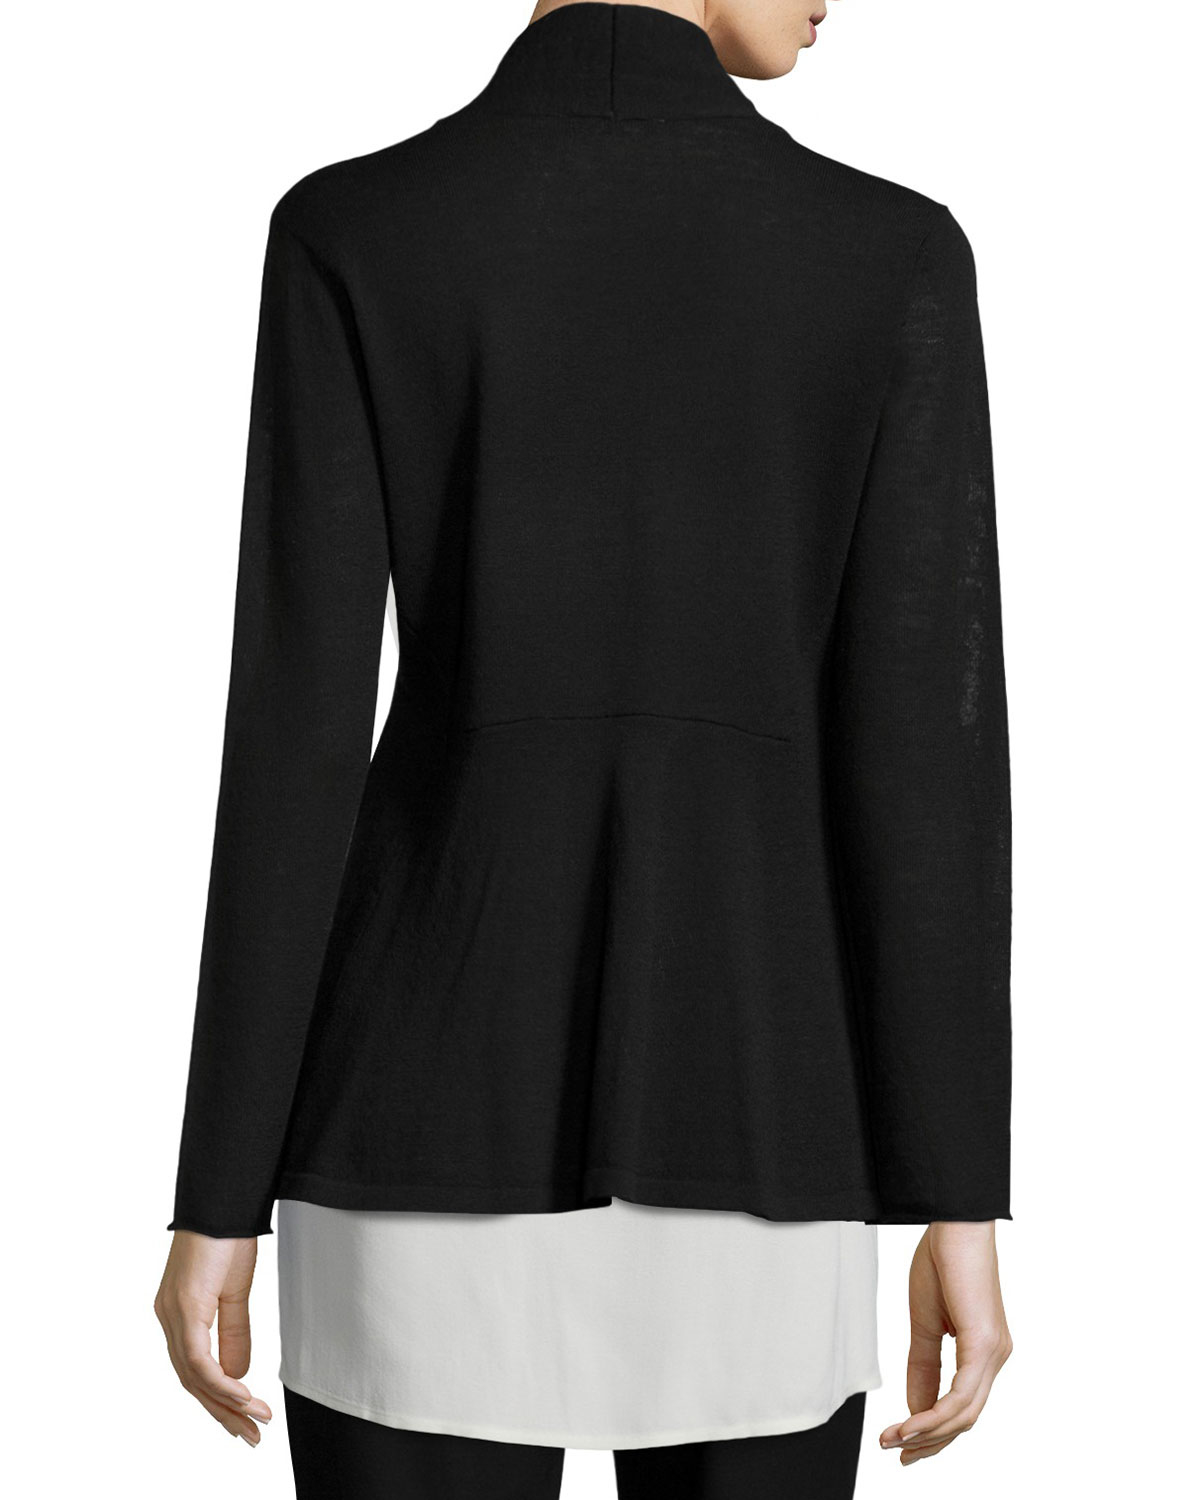 Eileen fisher Washable Wool Crepe Cardigan in Black | Lyst